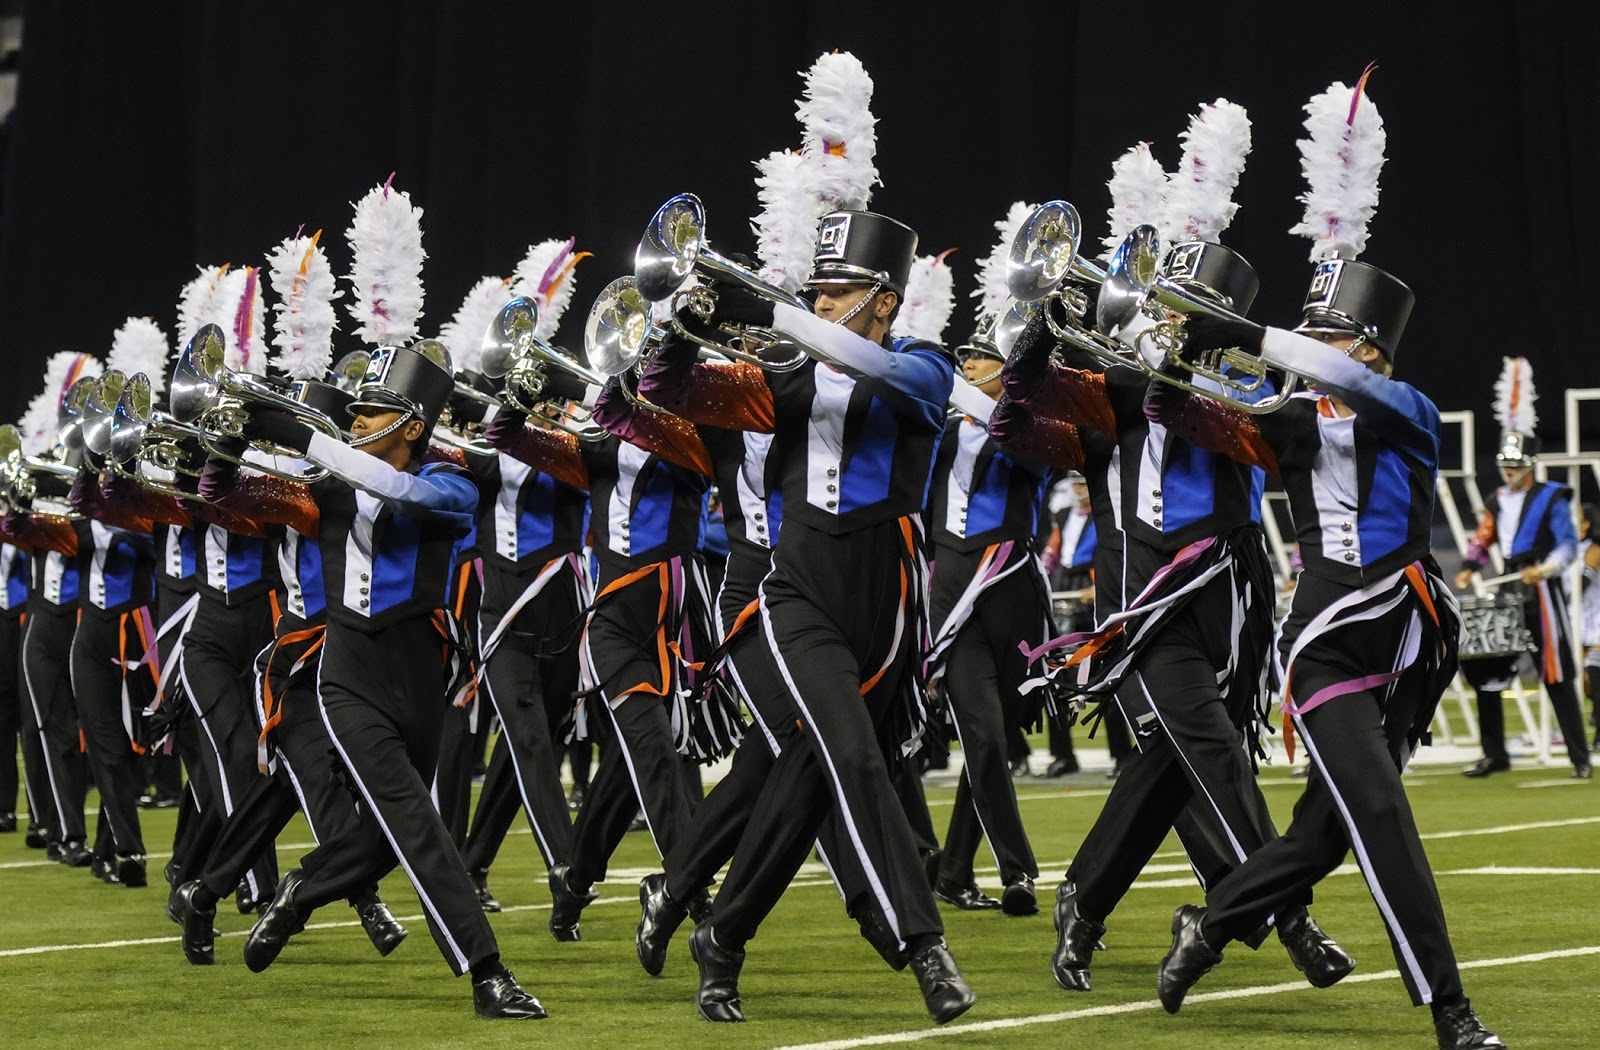 The Blue Devils Drum and Bugle Corps performs at the 2015 Drum Corps International World Championship Finals, Saturday, August 8, 2015, at Lucas Oil Stadium in Indianapolis.